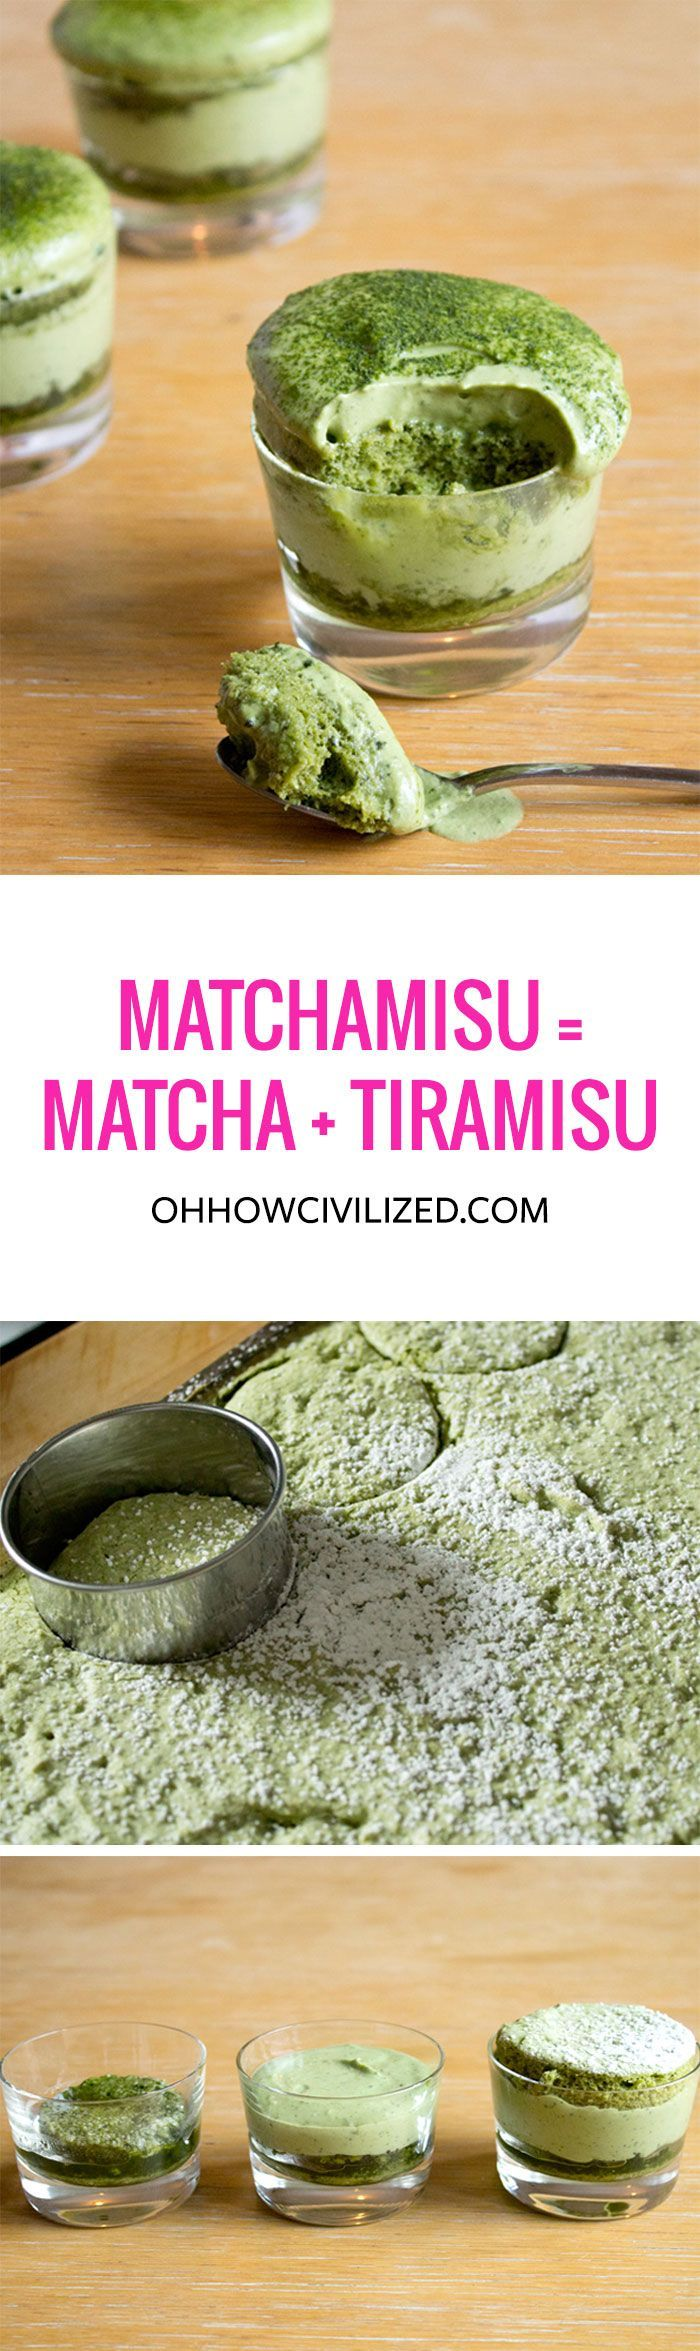 Matchamisu = #Matcha (#Green #Tea) + Tiramisu...I do love tiramisu! Does this mean it's healthy now?! ;)